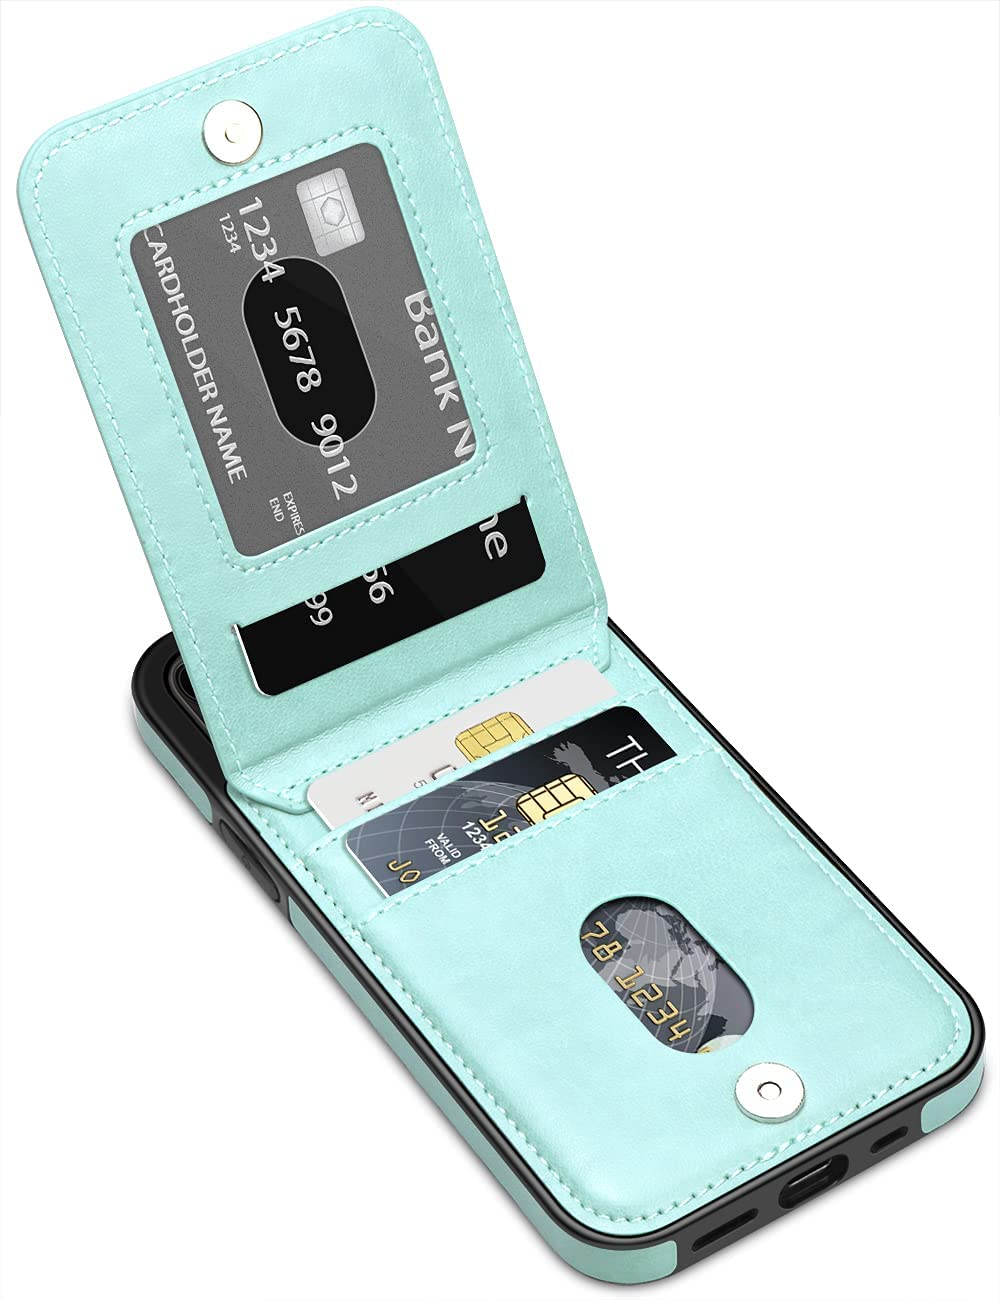 LakiBeibi for iPhone 12 Pro Max Case for Women Girls, Premium Leather iPhone 12 Pro Max Wallet Case with Card Slots Flip Protective Case for iPhone 12 Pro Max Phone Case 6.7 Inches (2020), Mint